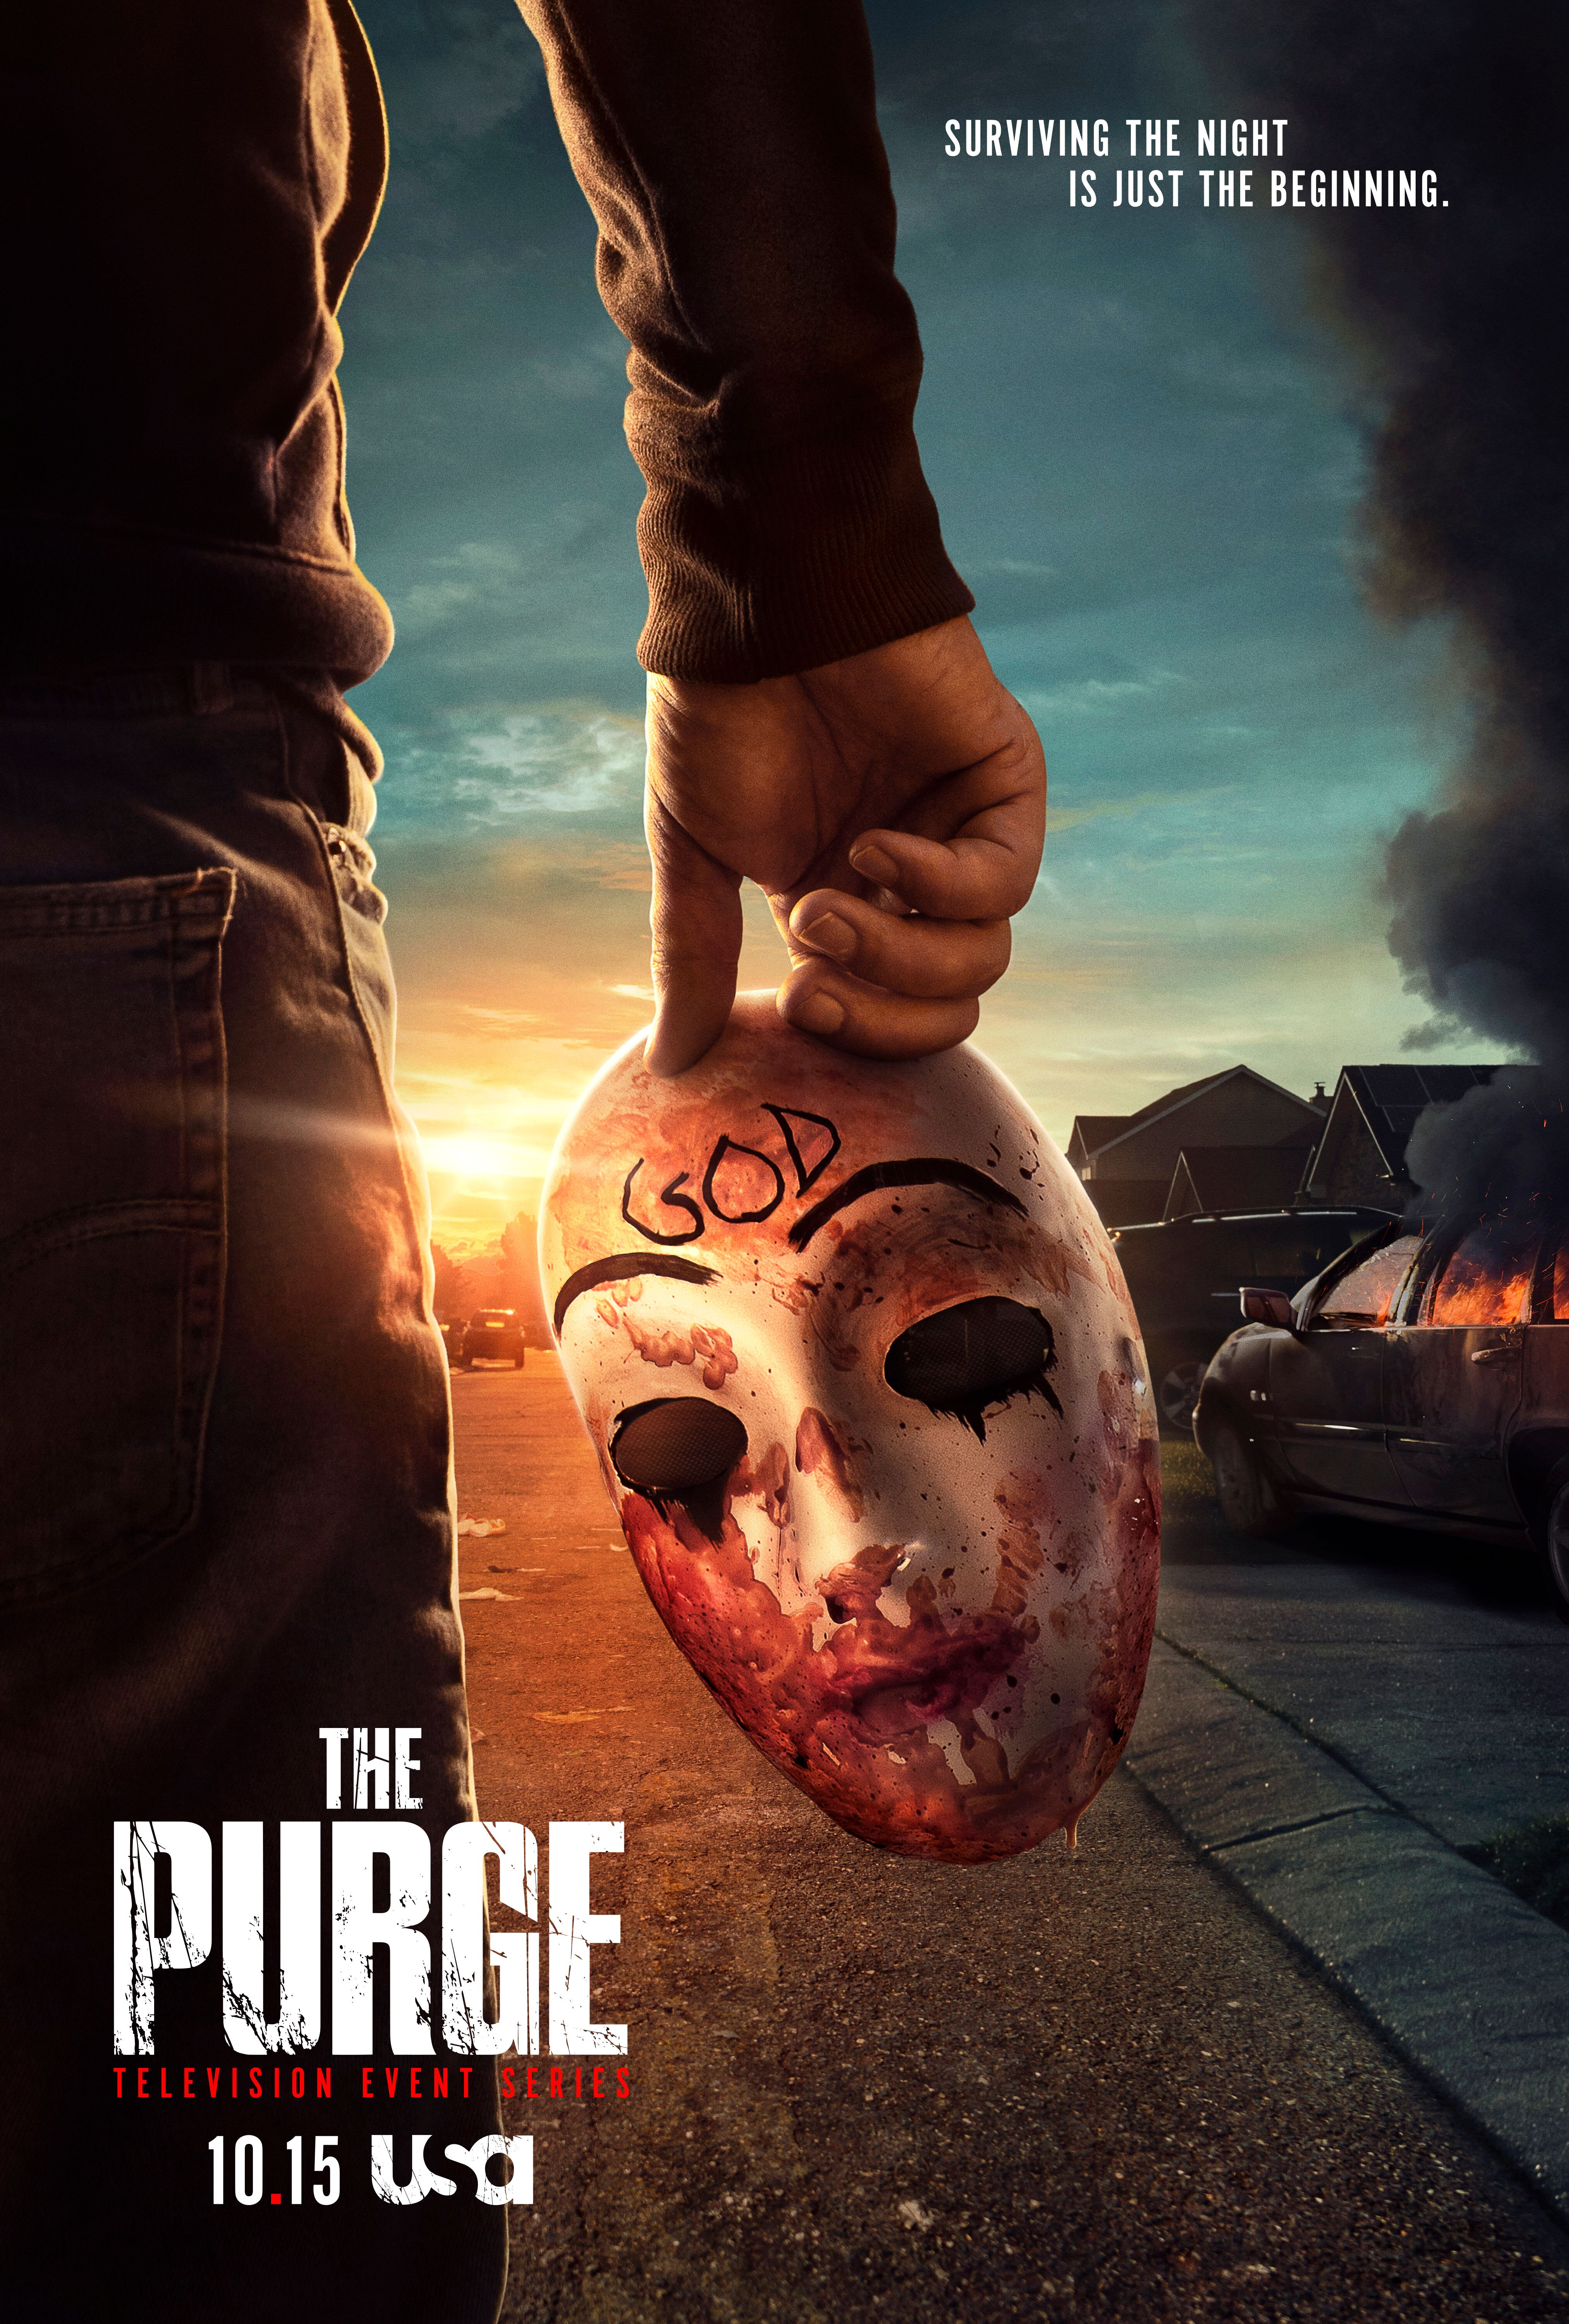 [News] Official Trailer For Season 2 of THE PURGE